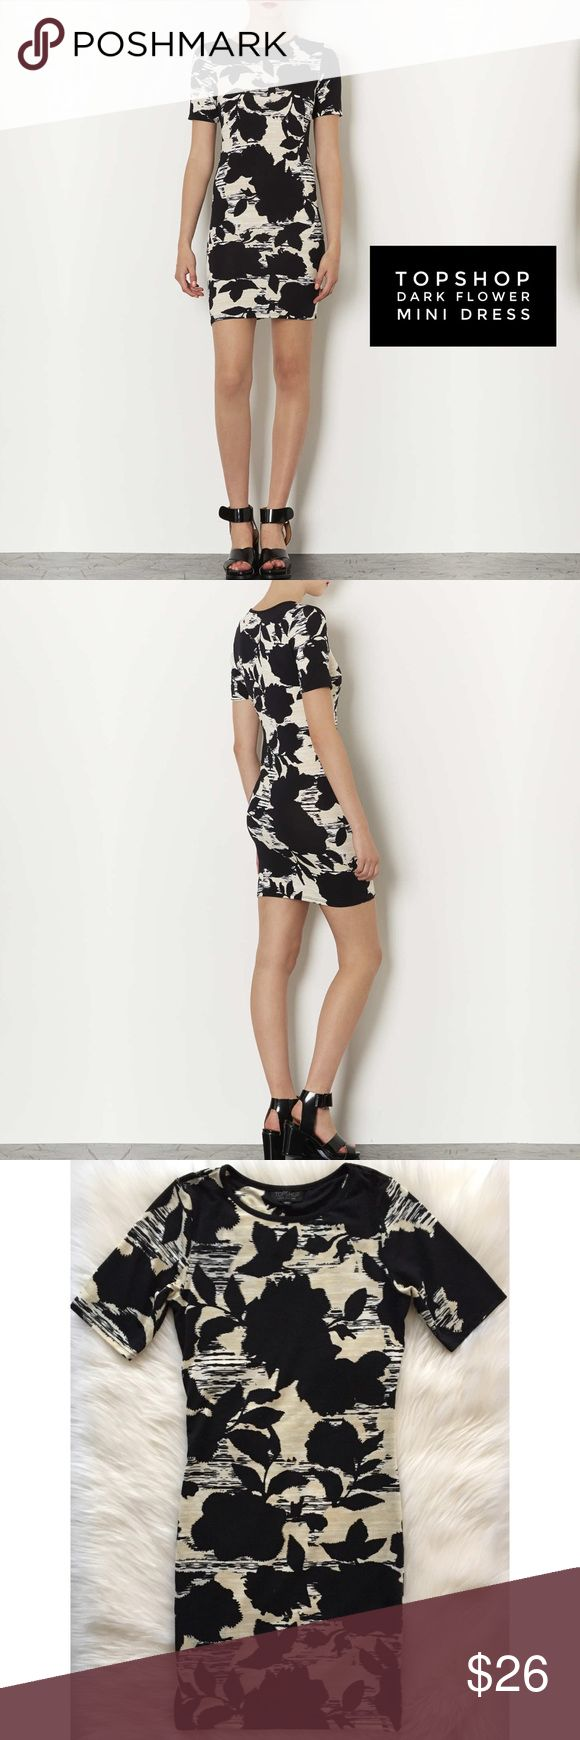 """Topshop // Dark Flower Mini Dress • TOPSHOP • {Dark Flower Mini Dress}  DETAILS // Dark flower print jersey bodycon dress with t-shirt sleeves and a scoop neckline. Easily dressed up or down and perfect for a variety of wardrobe styles  SIZE // US 4, EUR 36, UK 8 EUC // Gently Worn, No Flaws MATERIALS // 91% Polyester, 9% Elastane  MEASUREMENTS // Flat, Unstretched Length: 32"""" Hem Width: 13.5"""" Chest Width: 13.75"""" Sleeve Length: 7"""" Arm Opening: 9"""" Topshop Dresses Mini"""